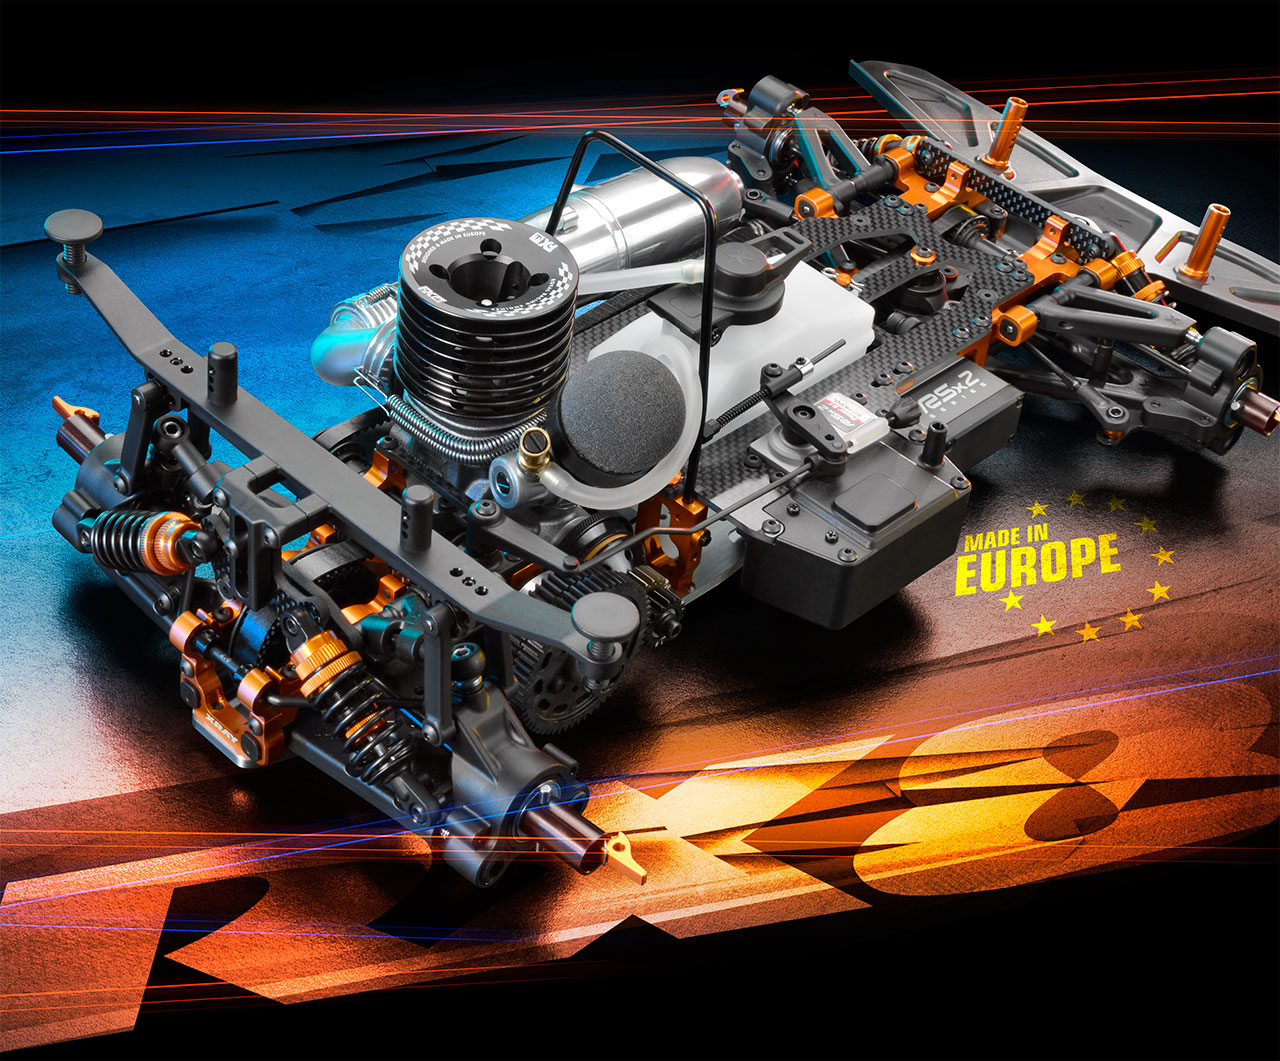 Features Xray Rx818 Diagram Of Rx 8 Engine With Countless Wins In Multiple Classes At Local Regional National And International Levels Rx8 Is Designed For Highest Competition Racing